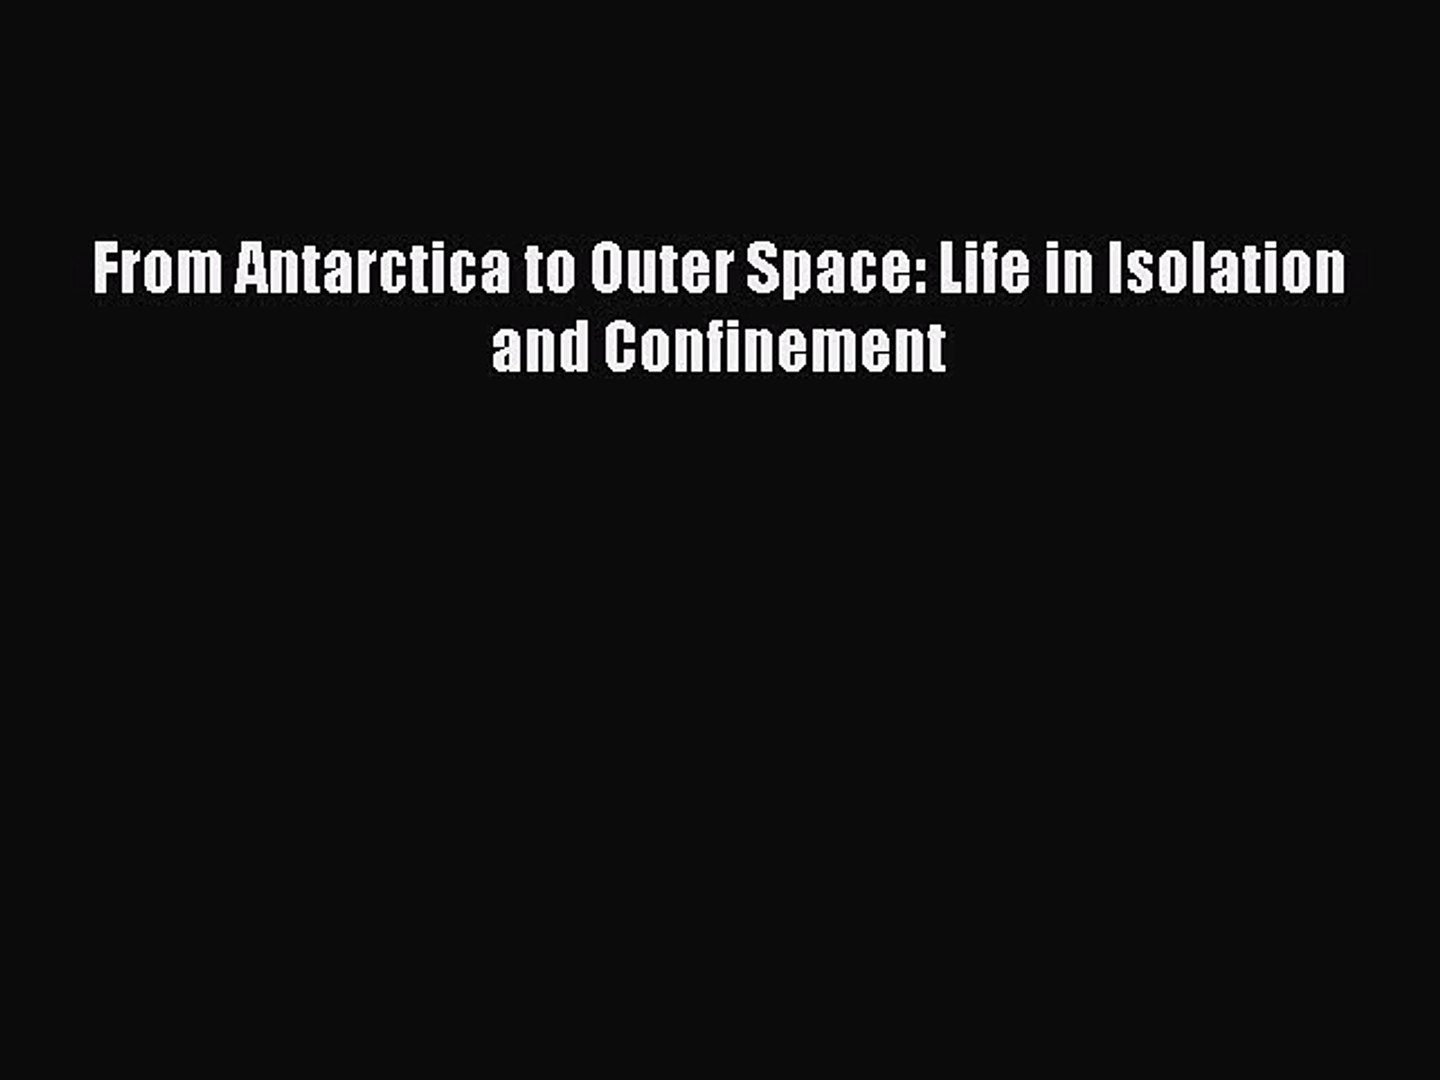 Download From Antarctica to Outer Space: Life in Isolation and Confinement  Read Online